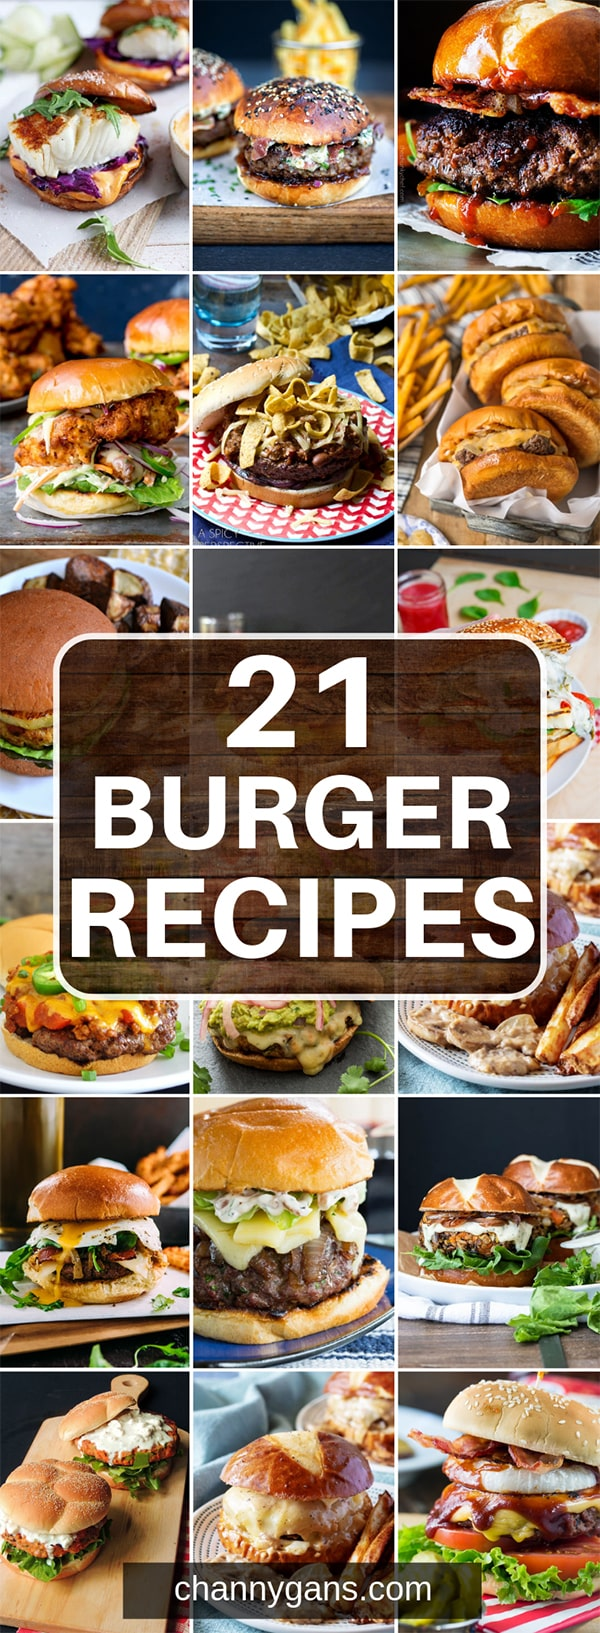 21 Best Burger Recipes. Bring some unique flavor to your next grill out with these burger recipes. These burgers are packed full of flavor and are perfect for lunch or dinner!